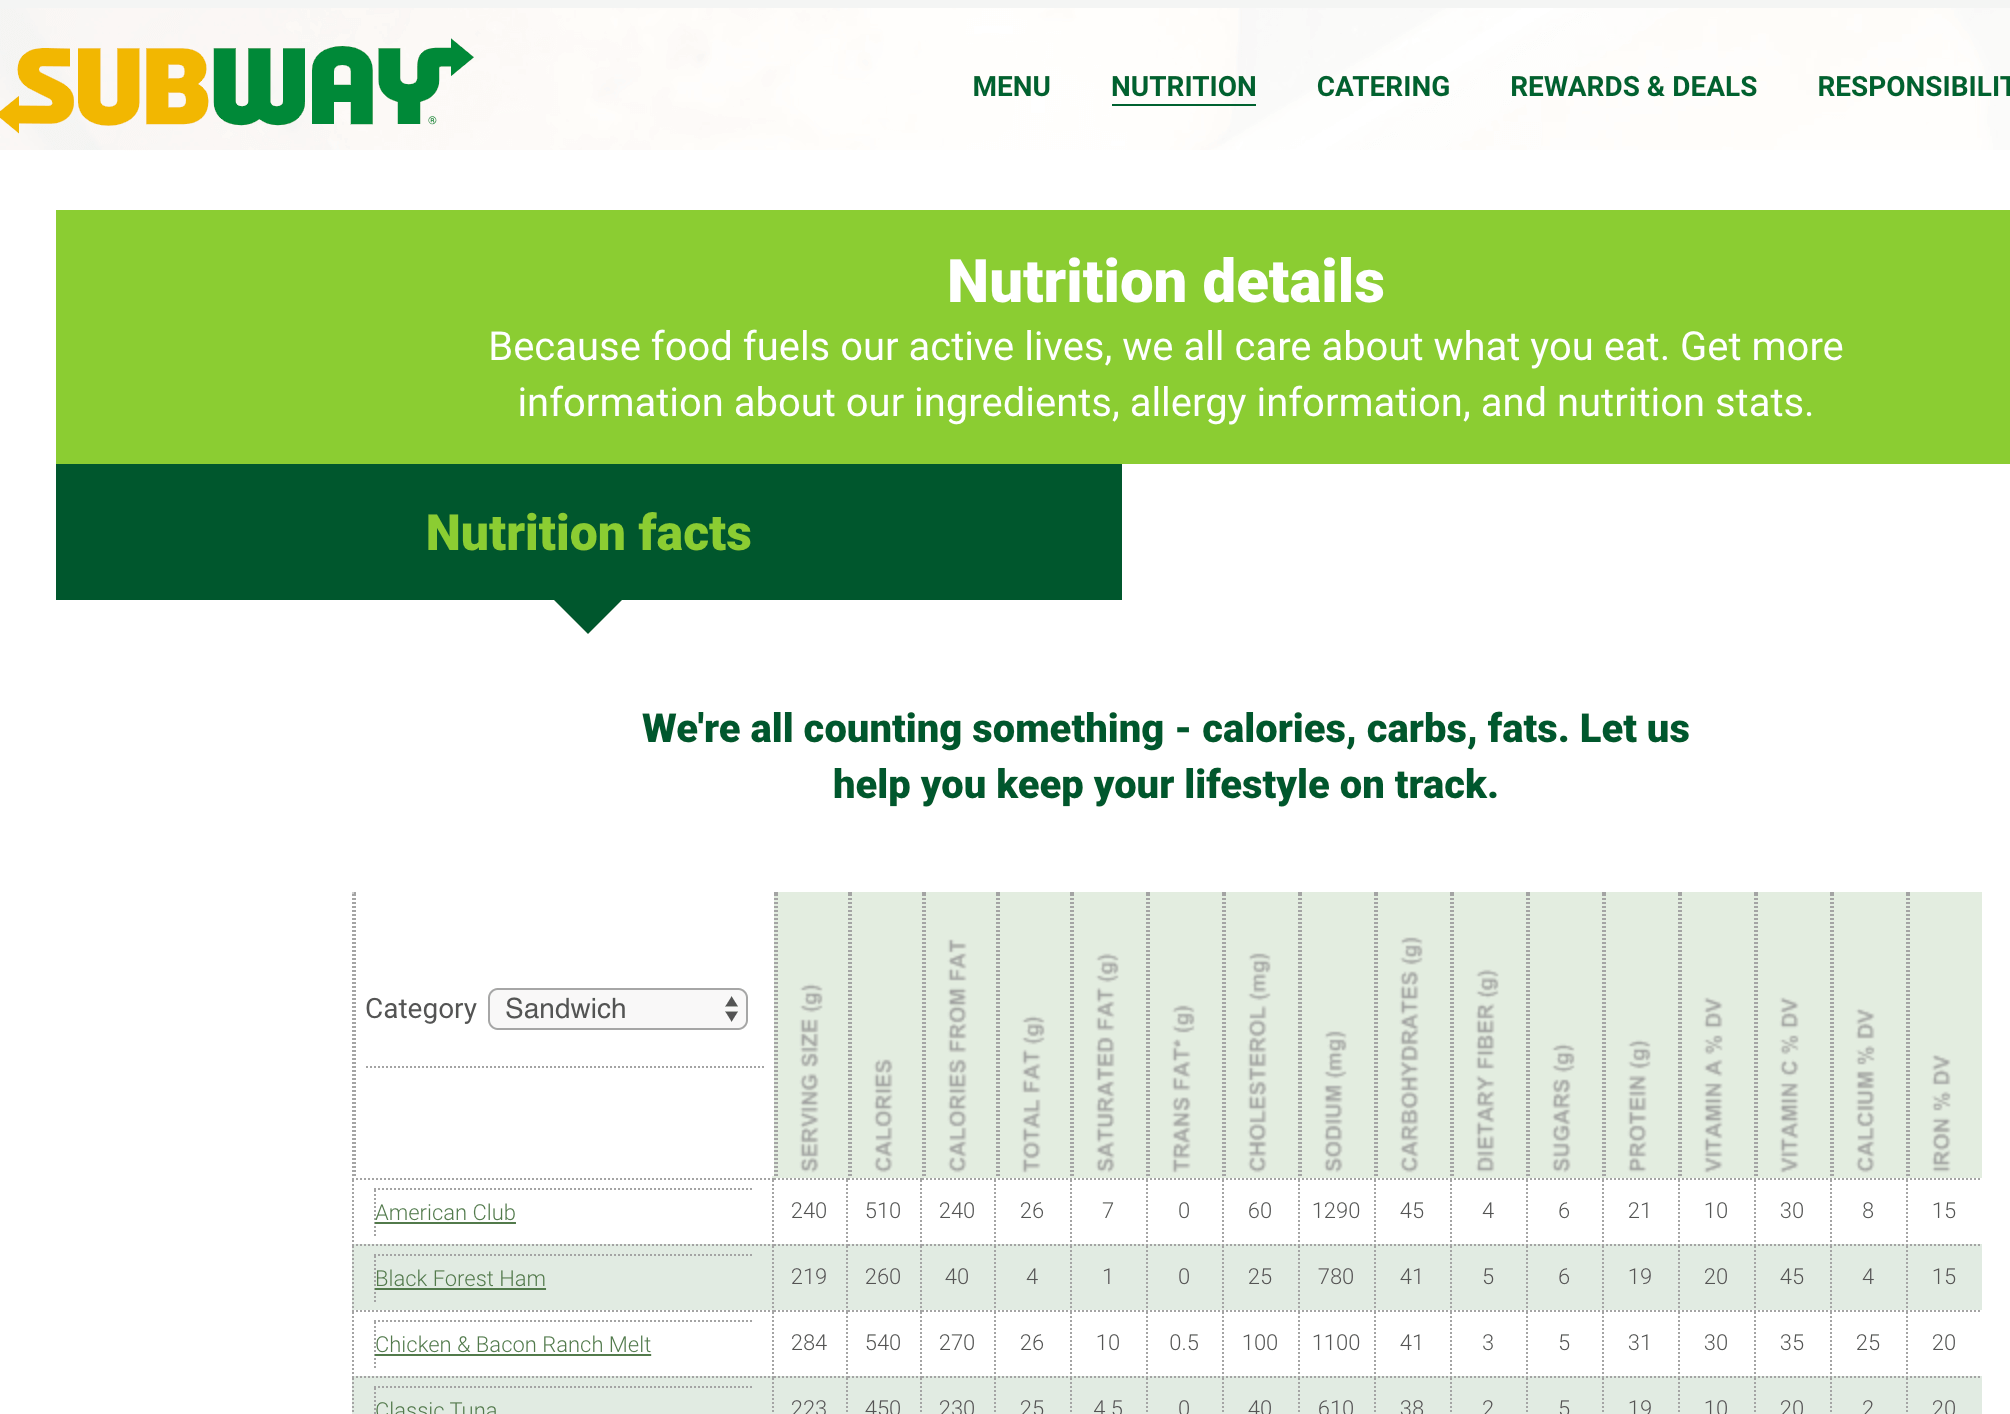 21 Day Fix Subway Nutrition Info